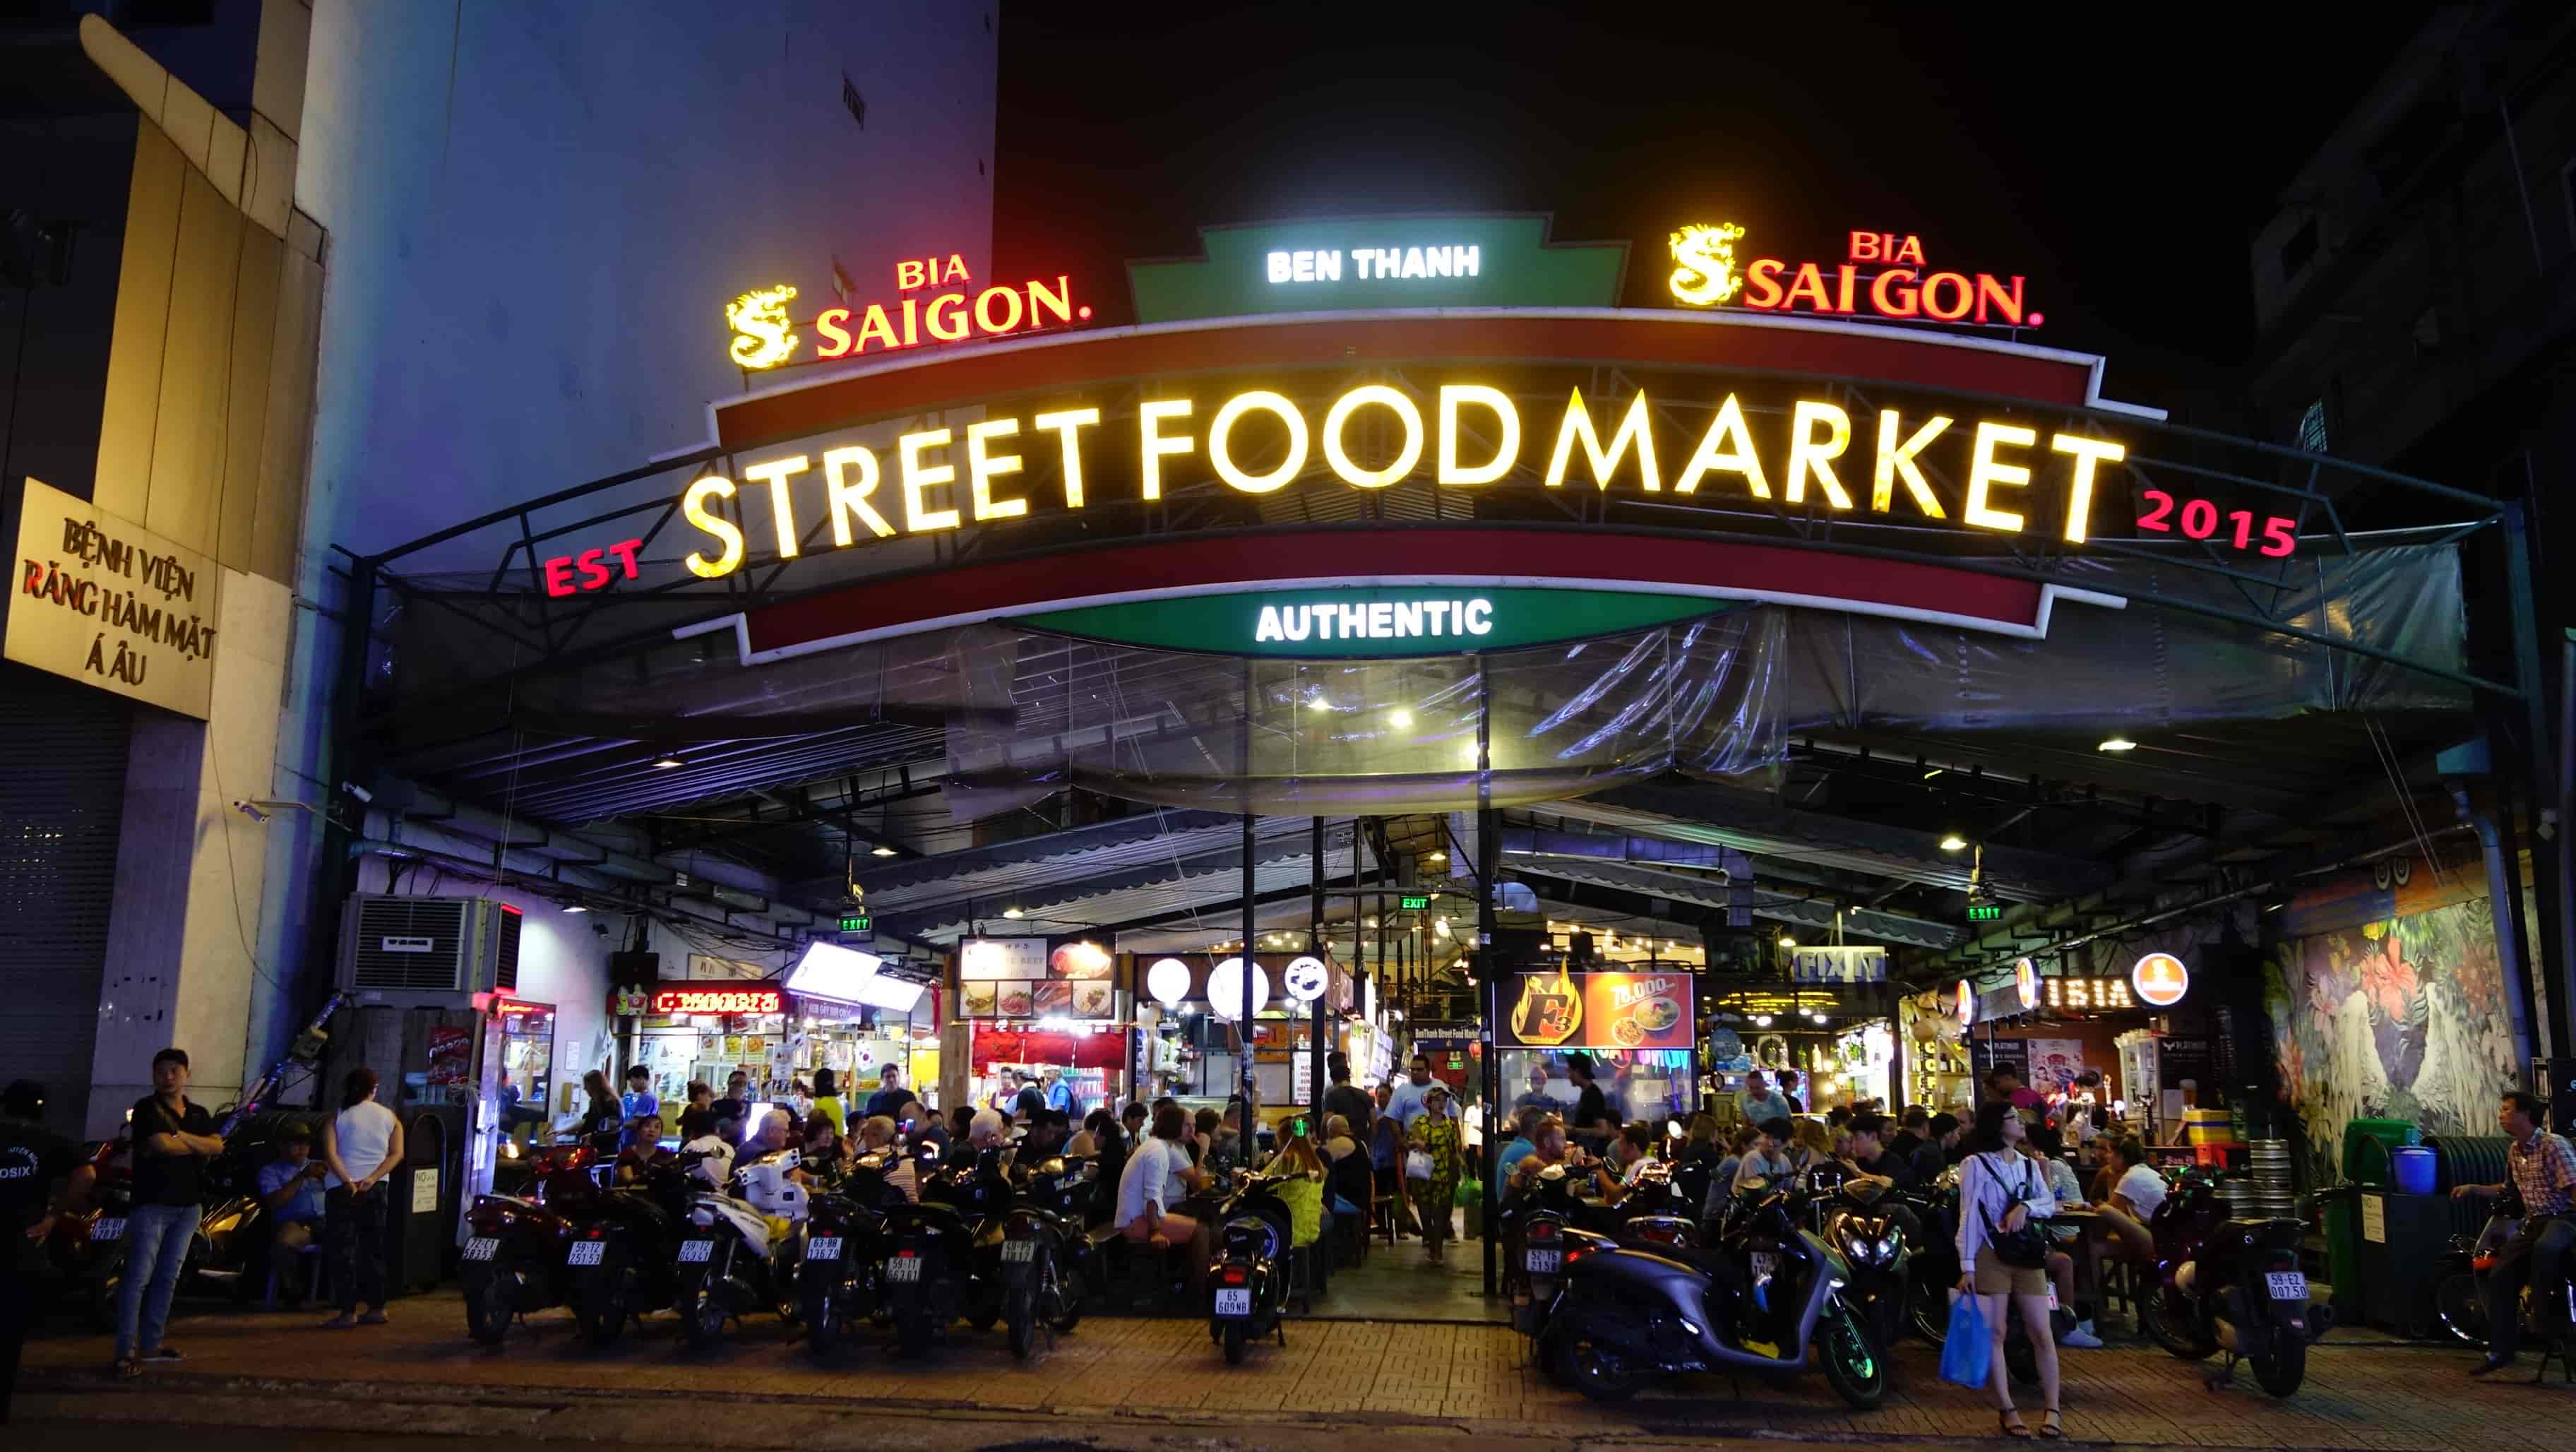 Ben Thanh Street food - Things to do in Ho Chi Minh City at night